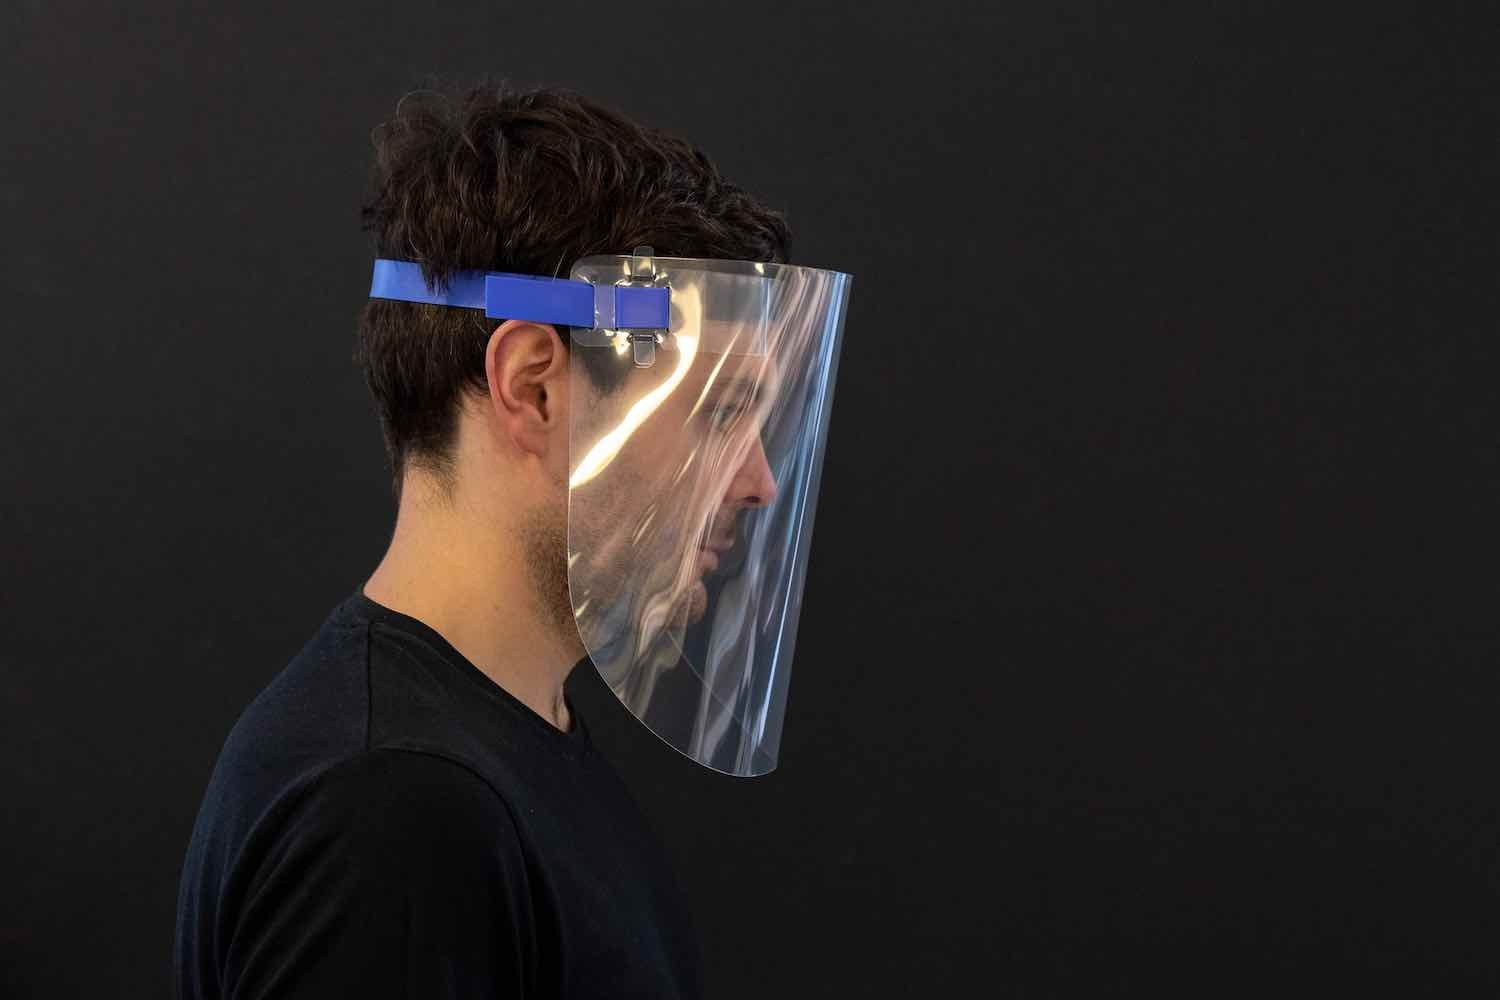 Foster+Partners' Face shield design prototype - Courtesy of Foster+Partners.